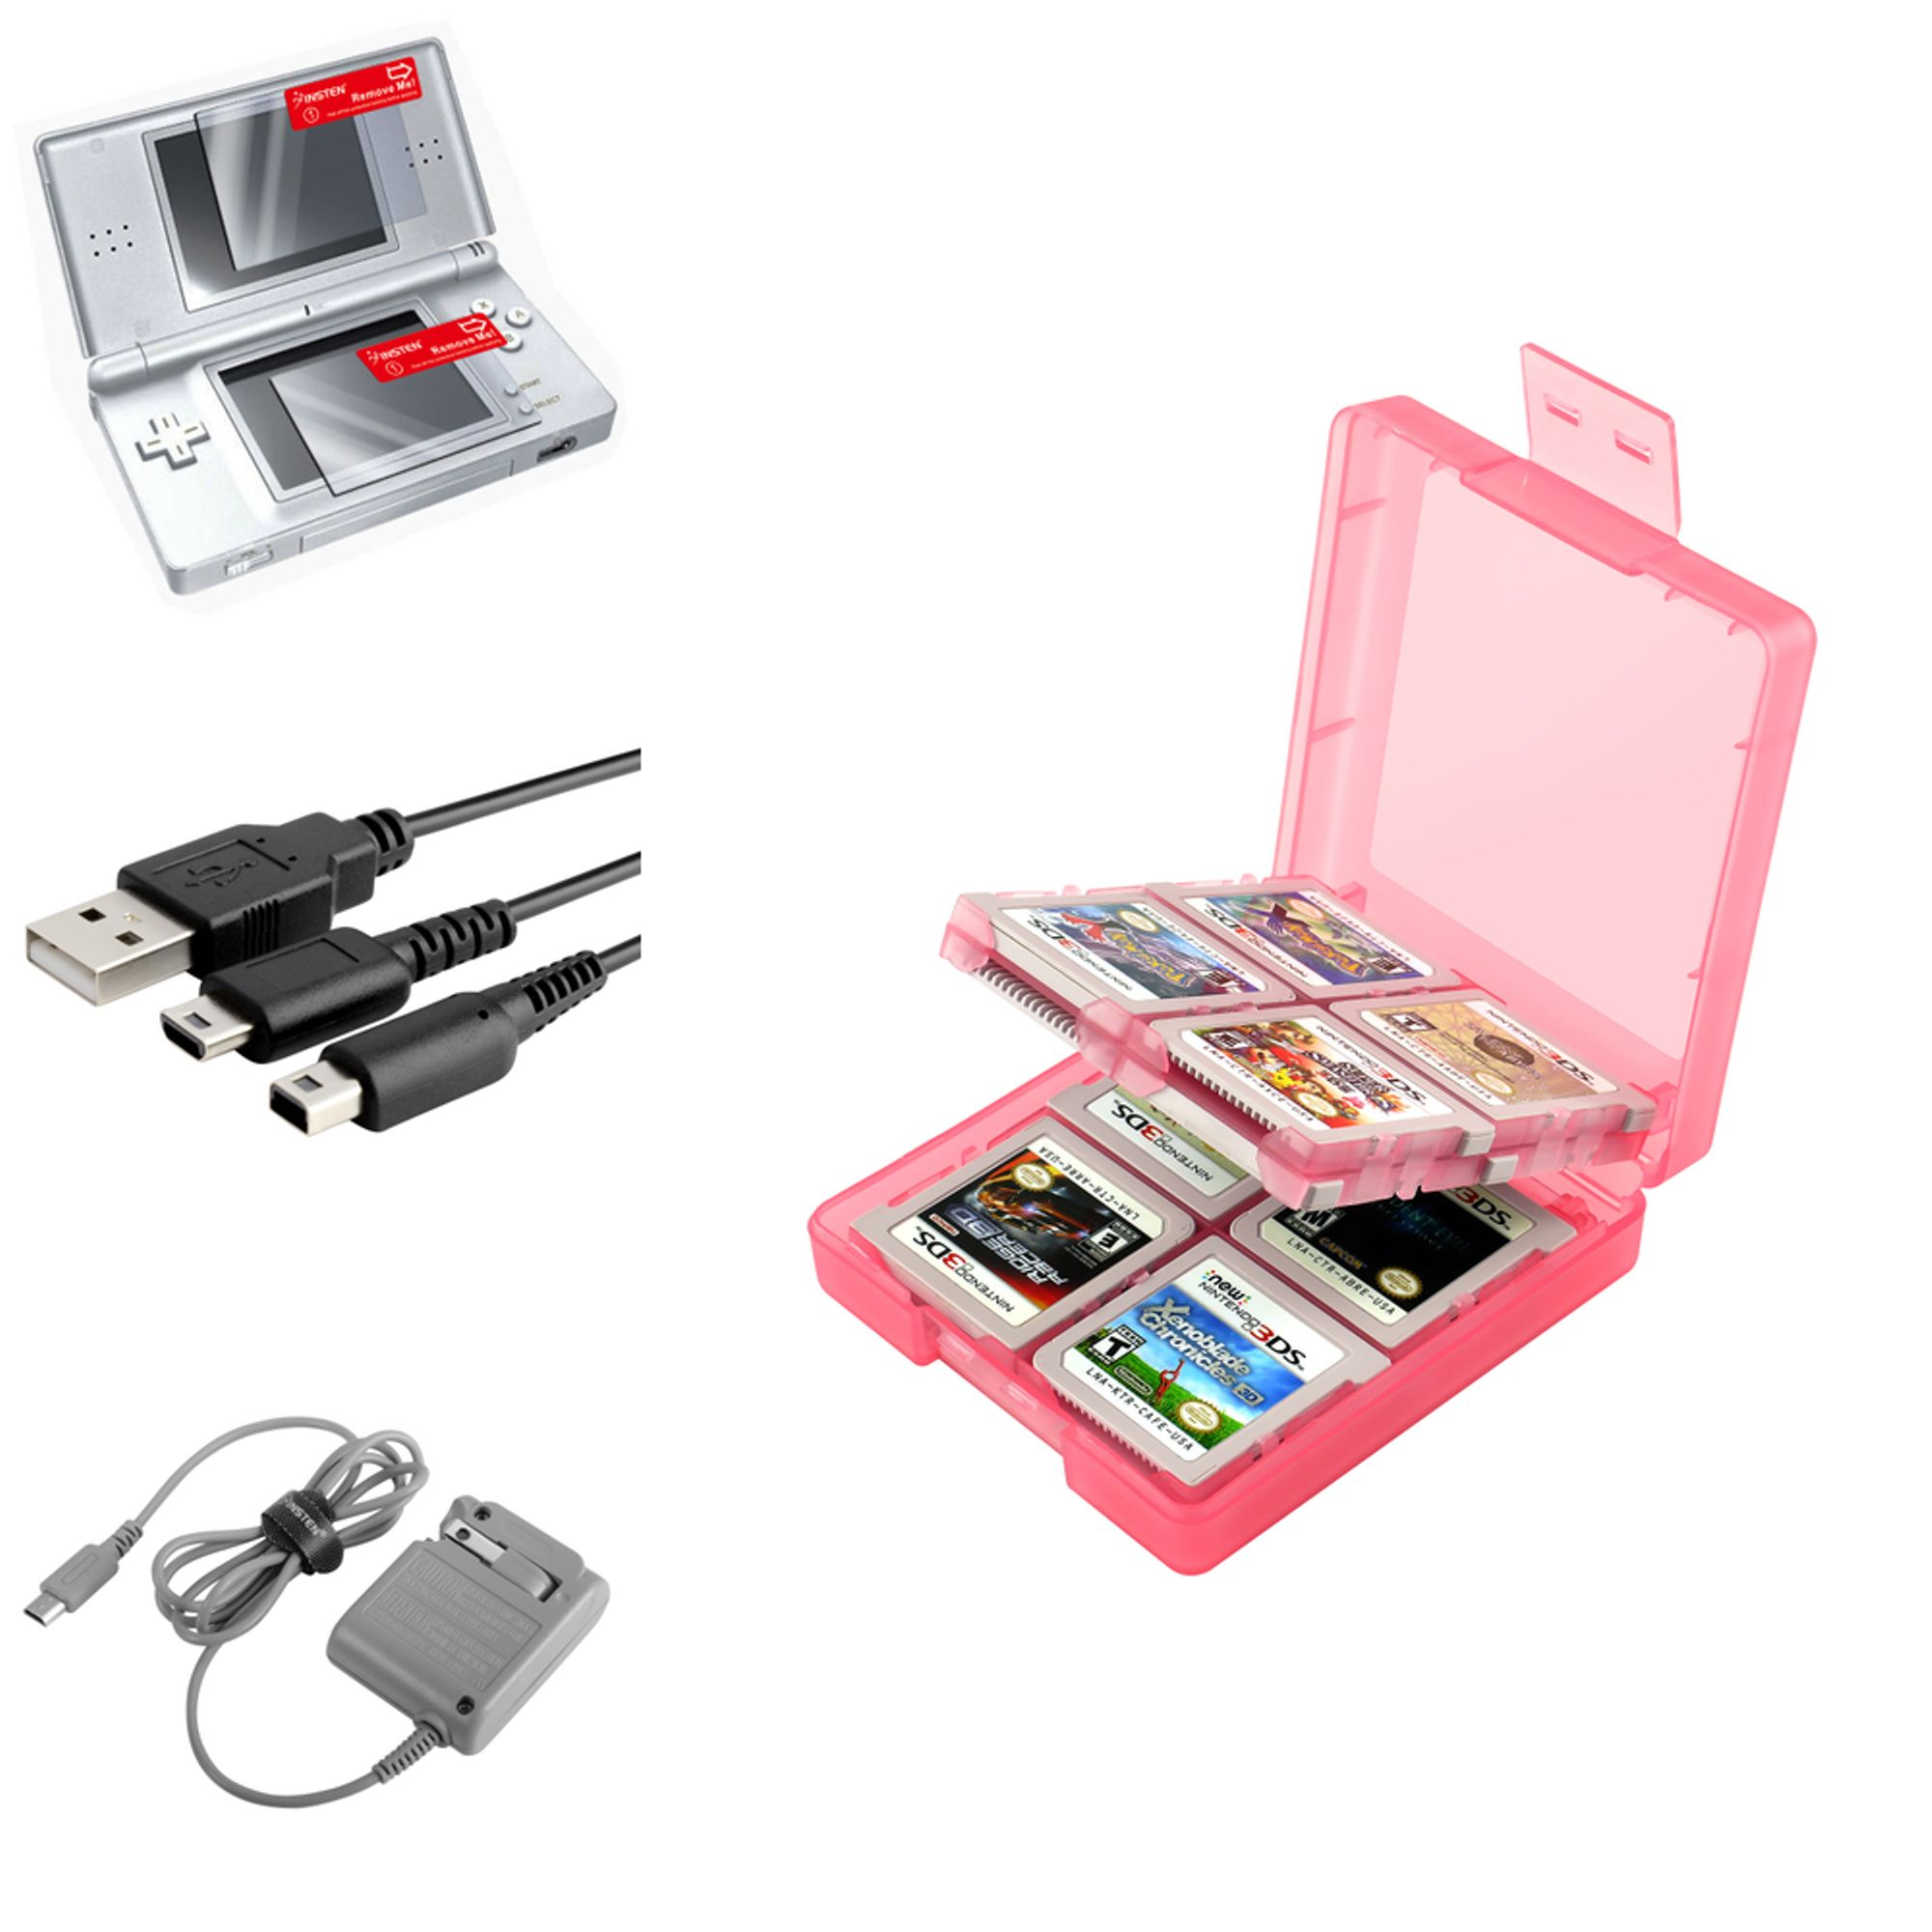 Charger for Nintendo DS Lite by Insten, Grey + Coral 16 in 1 Card Case + USB + 2-LCD Protector